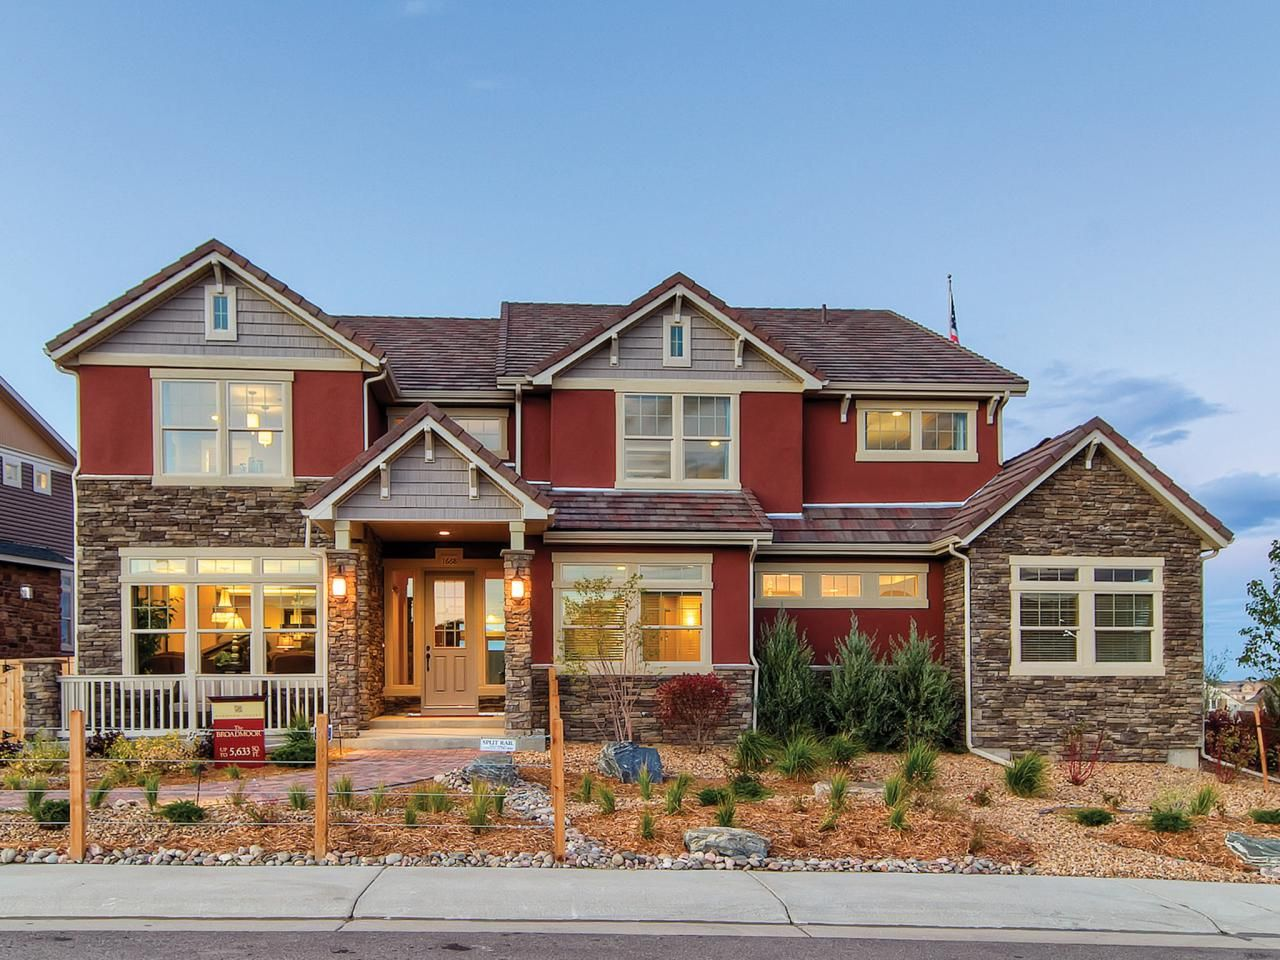 Red House with Siding and Stone Exteriors